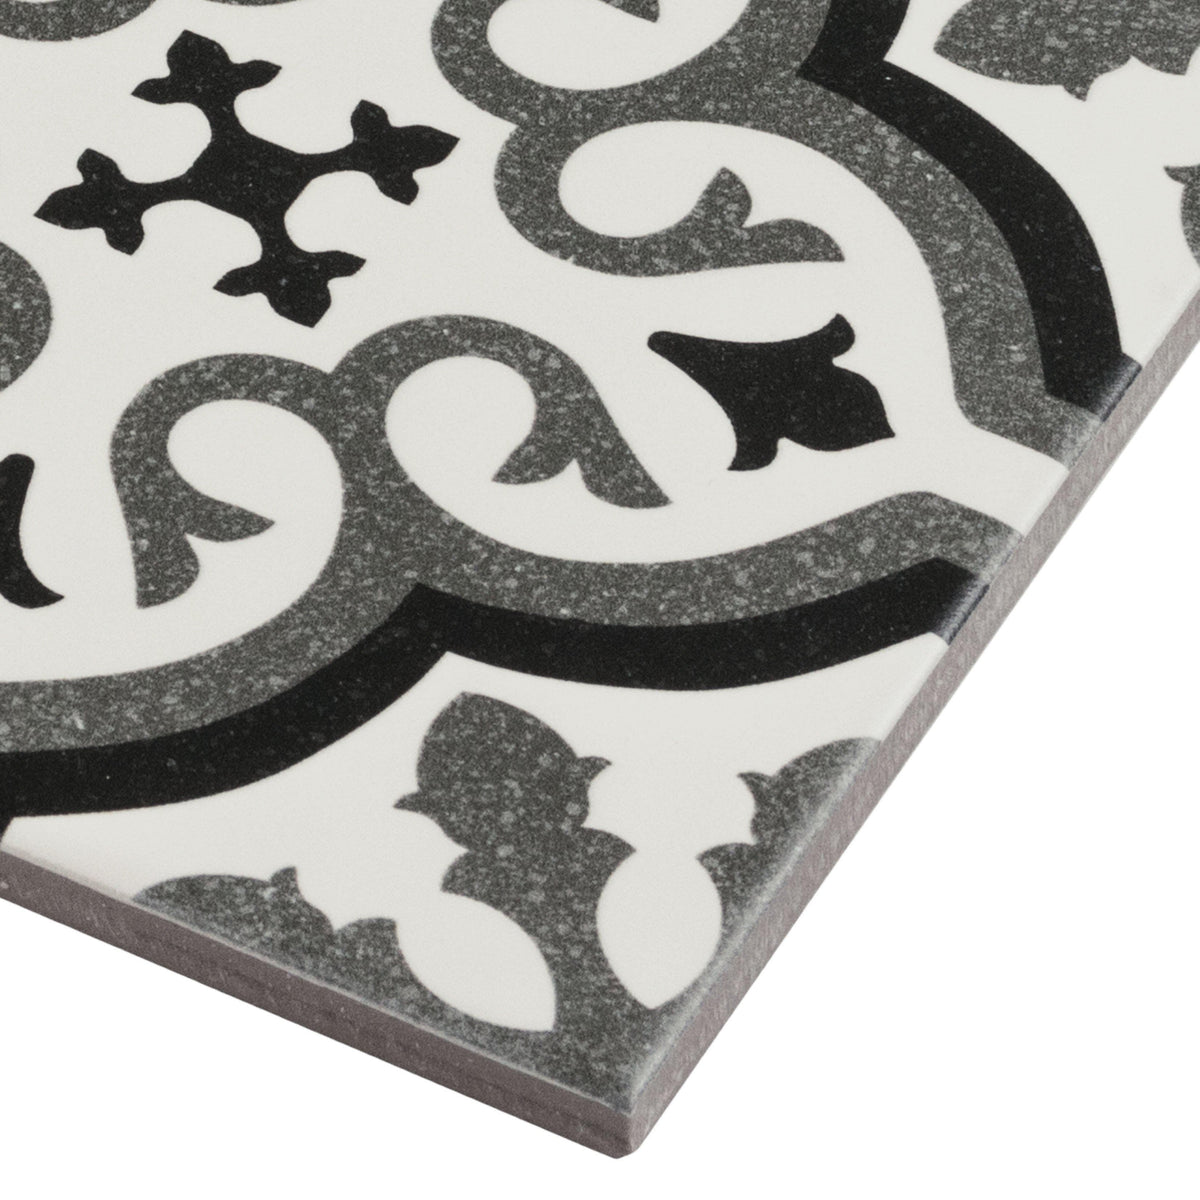 Mto0234 6x6 Deco Patterned Black Gray White Matte